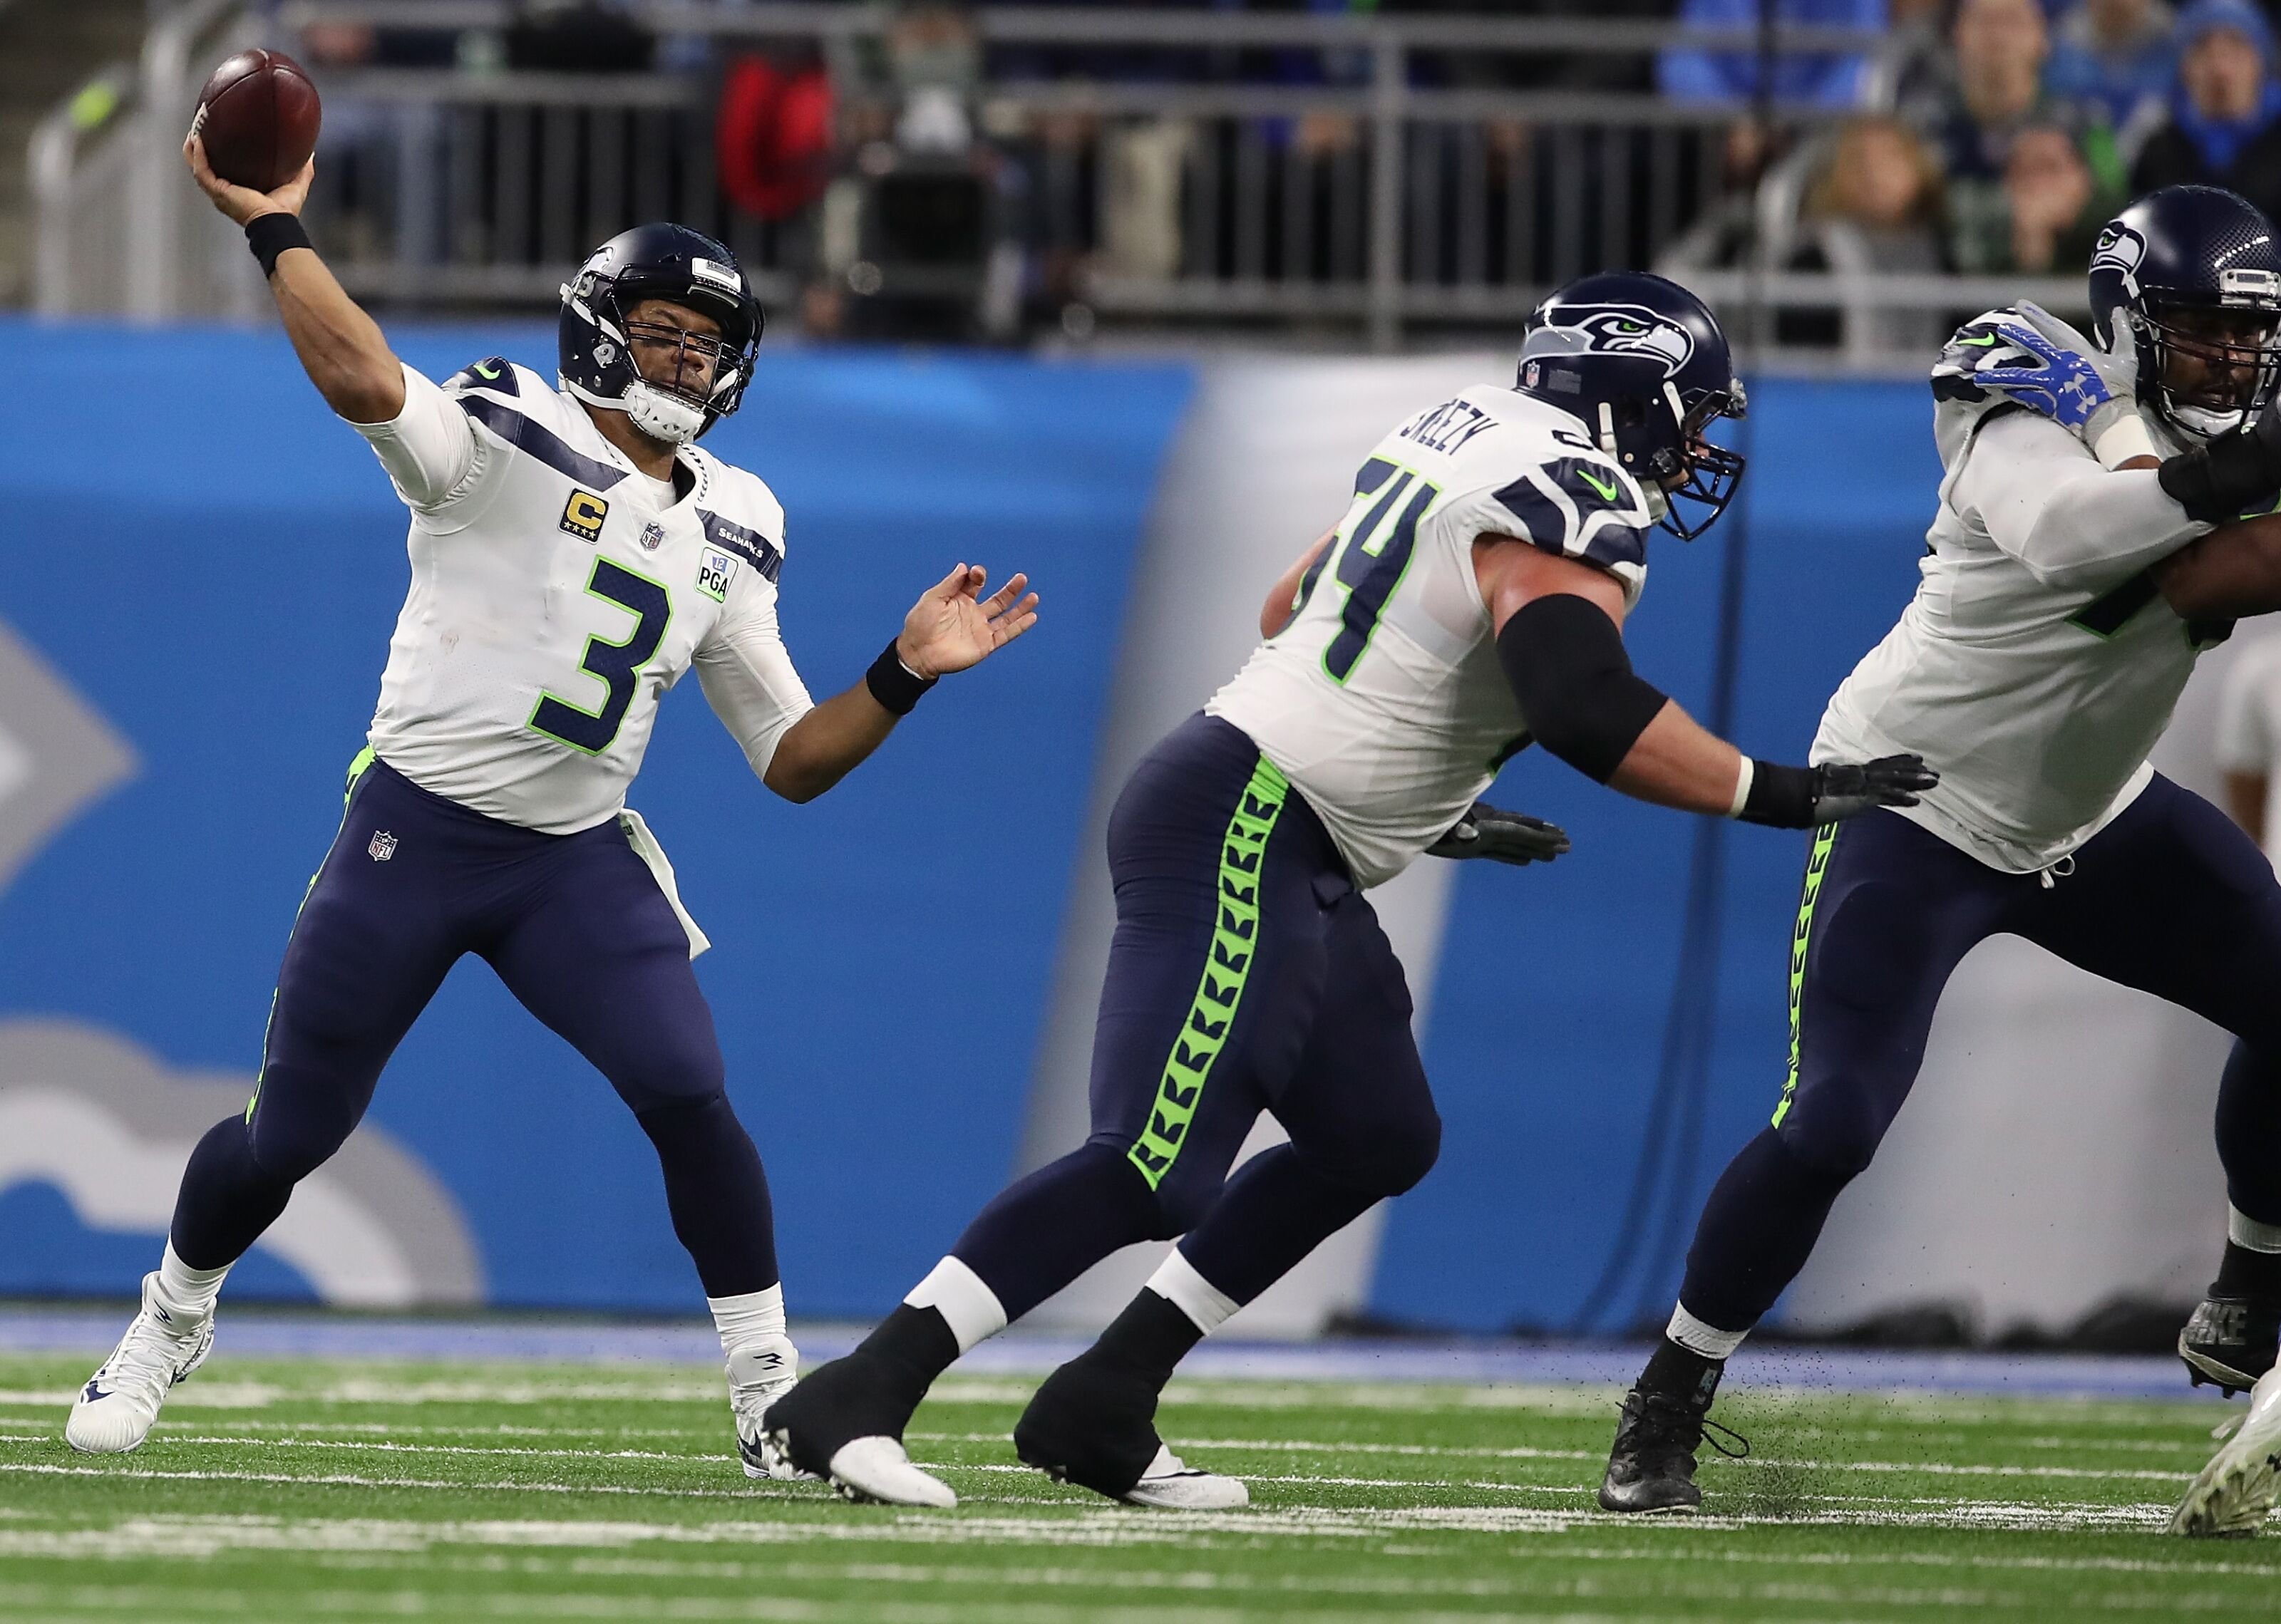 b9d1e3d0d Can Russell Wilson really keep up his great touchdown pace